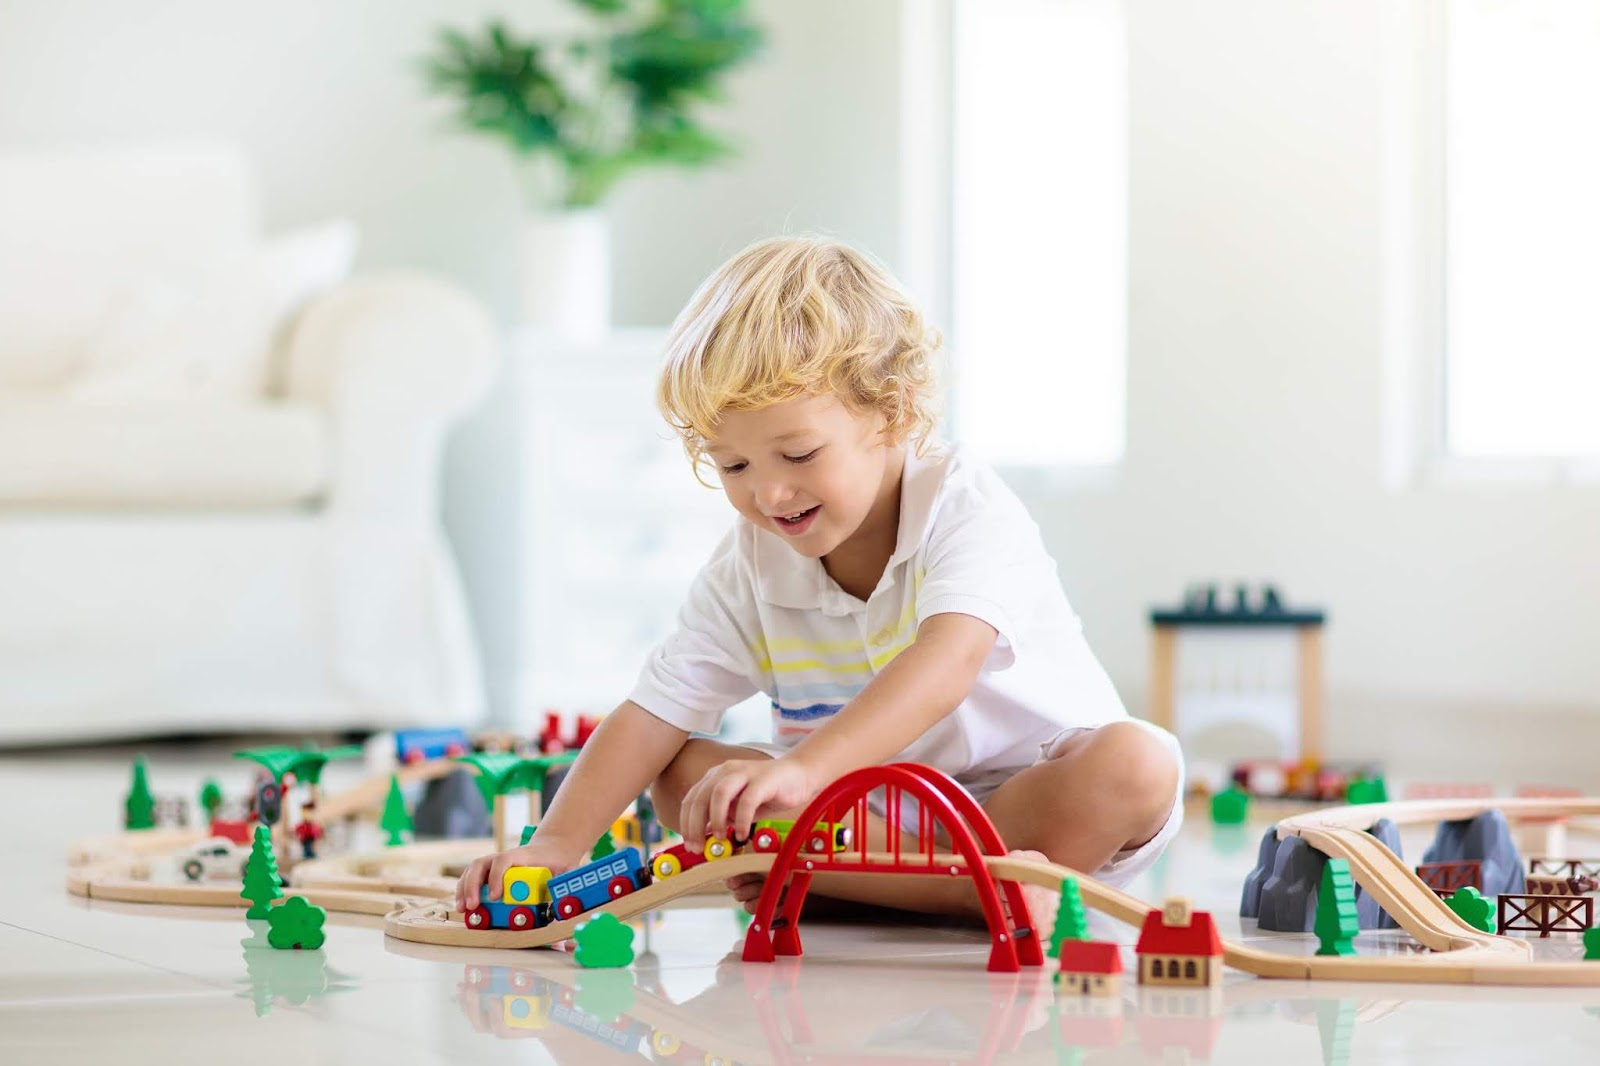 21 Of The Best Gifts For Kids Who Love Trains